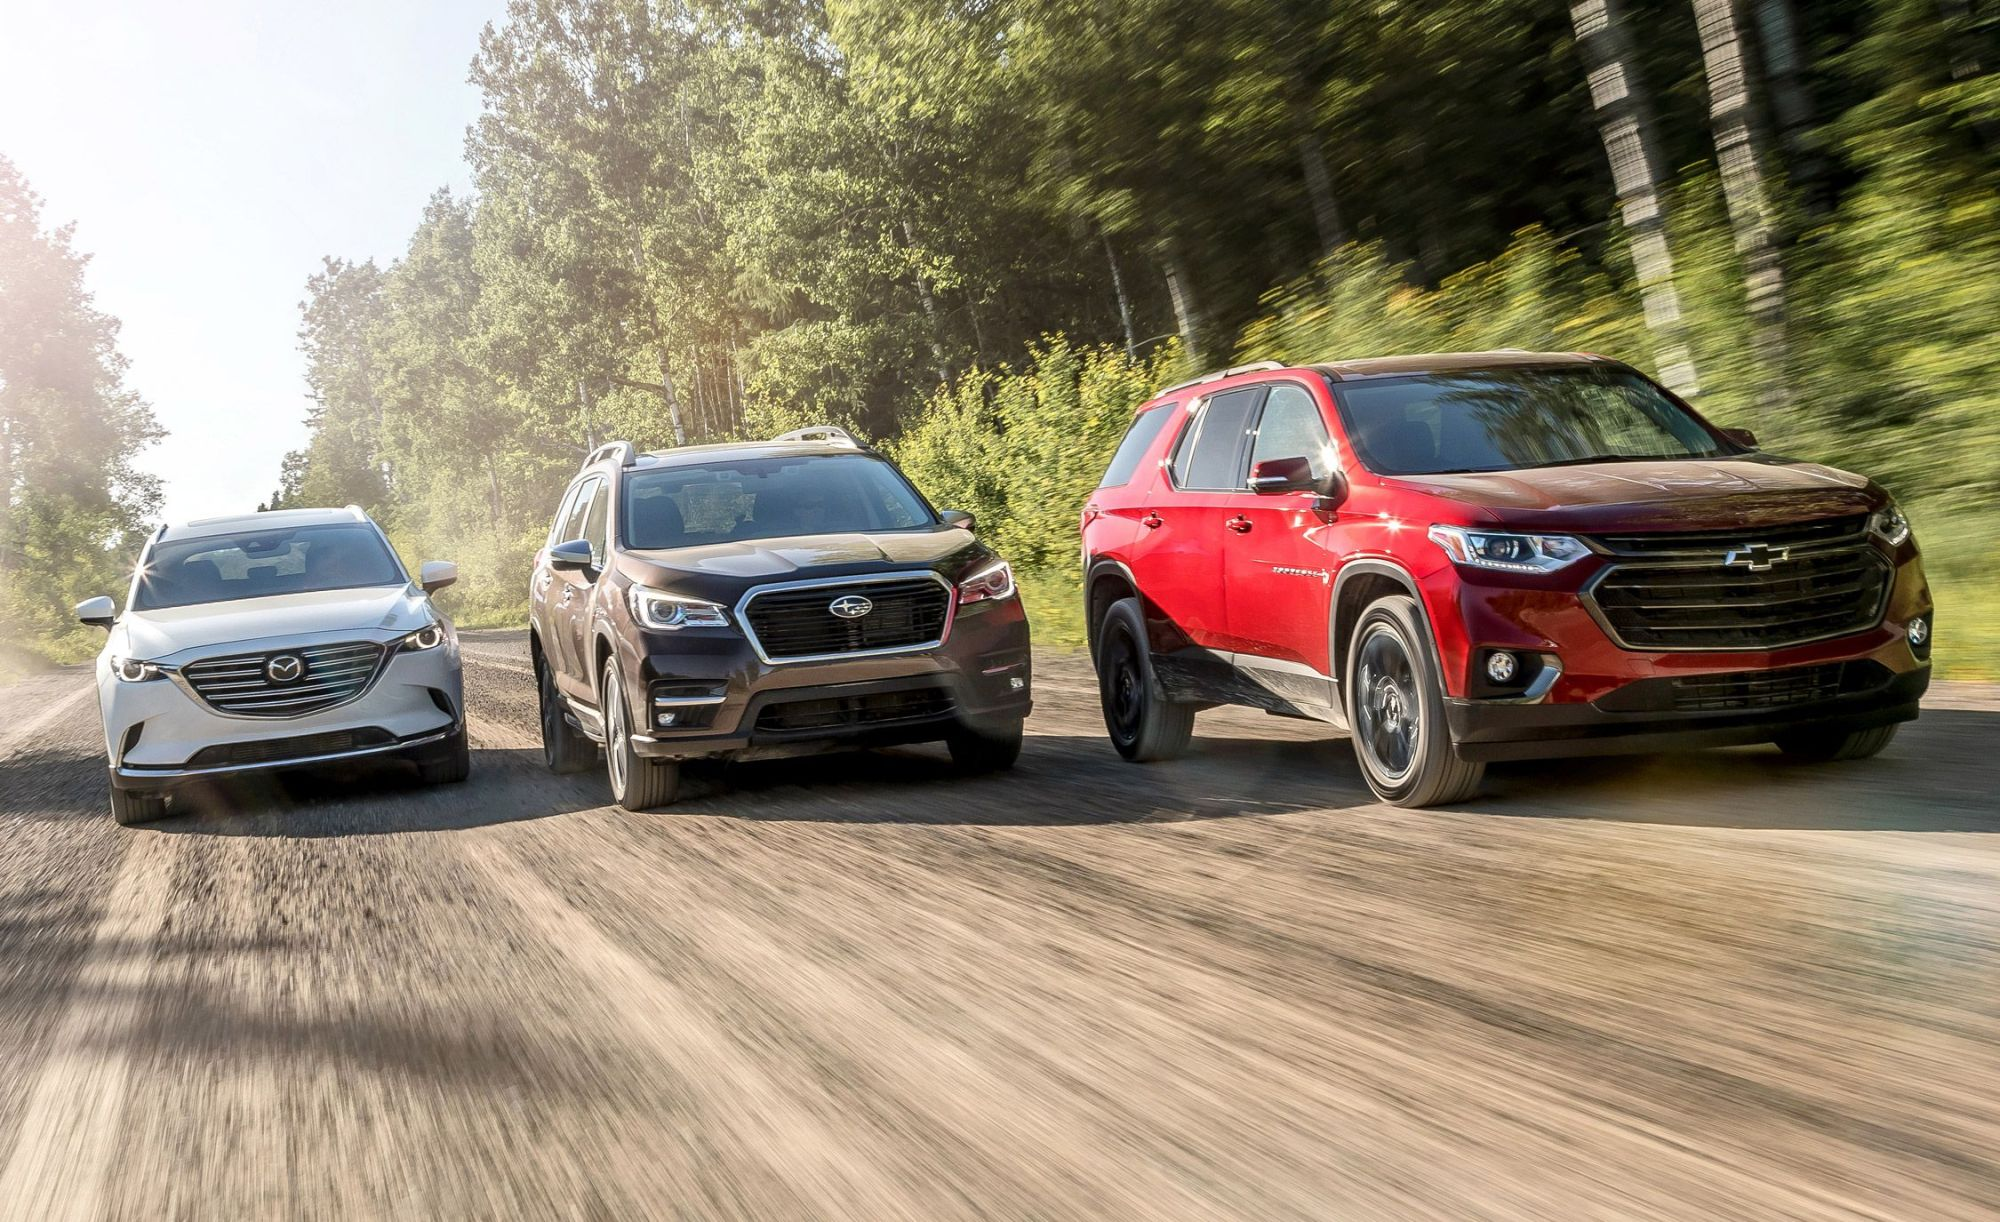 hight resolution of three row suvs compared subaru ascent and chevrolet traverse take on our reigning champ the mazda cx 9